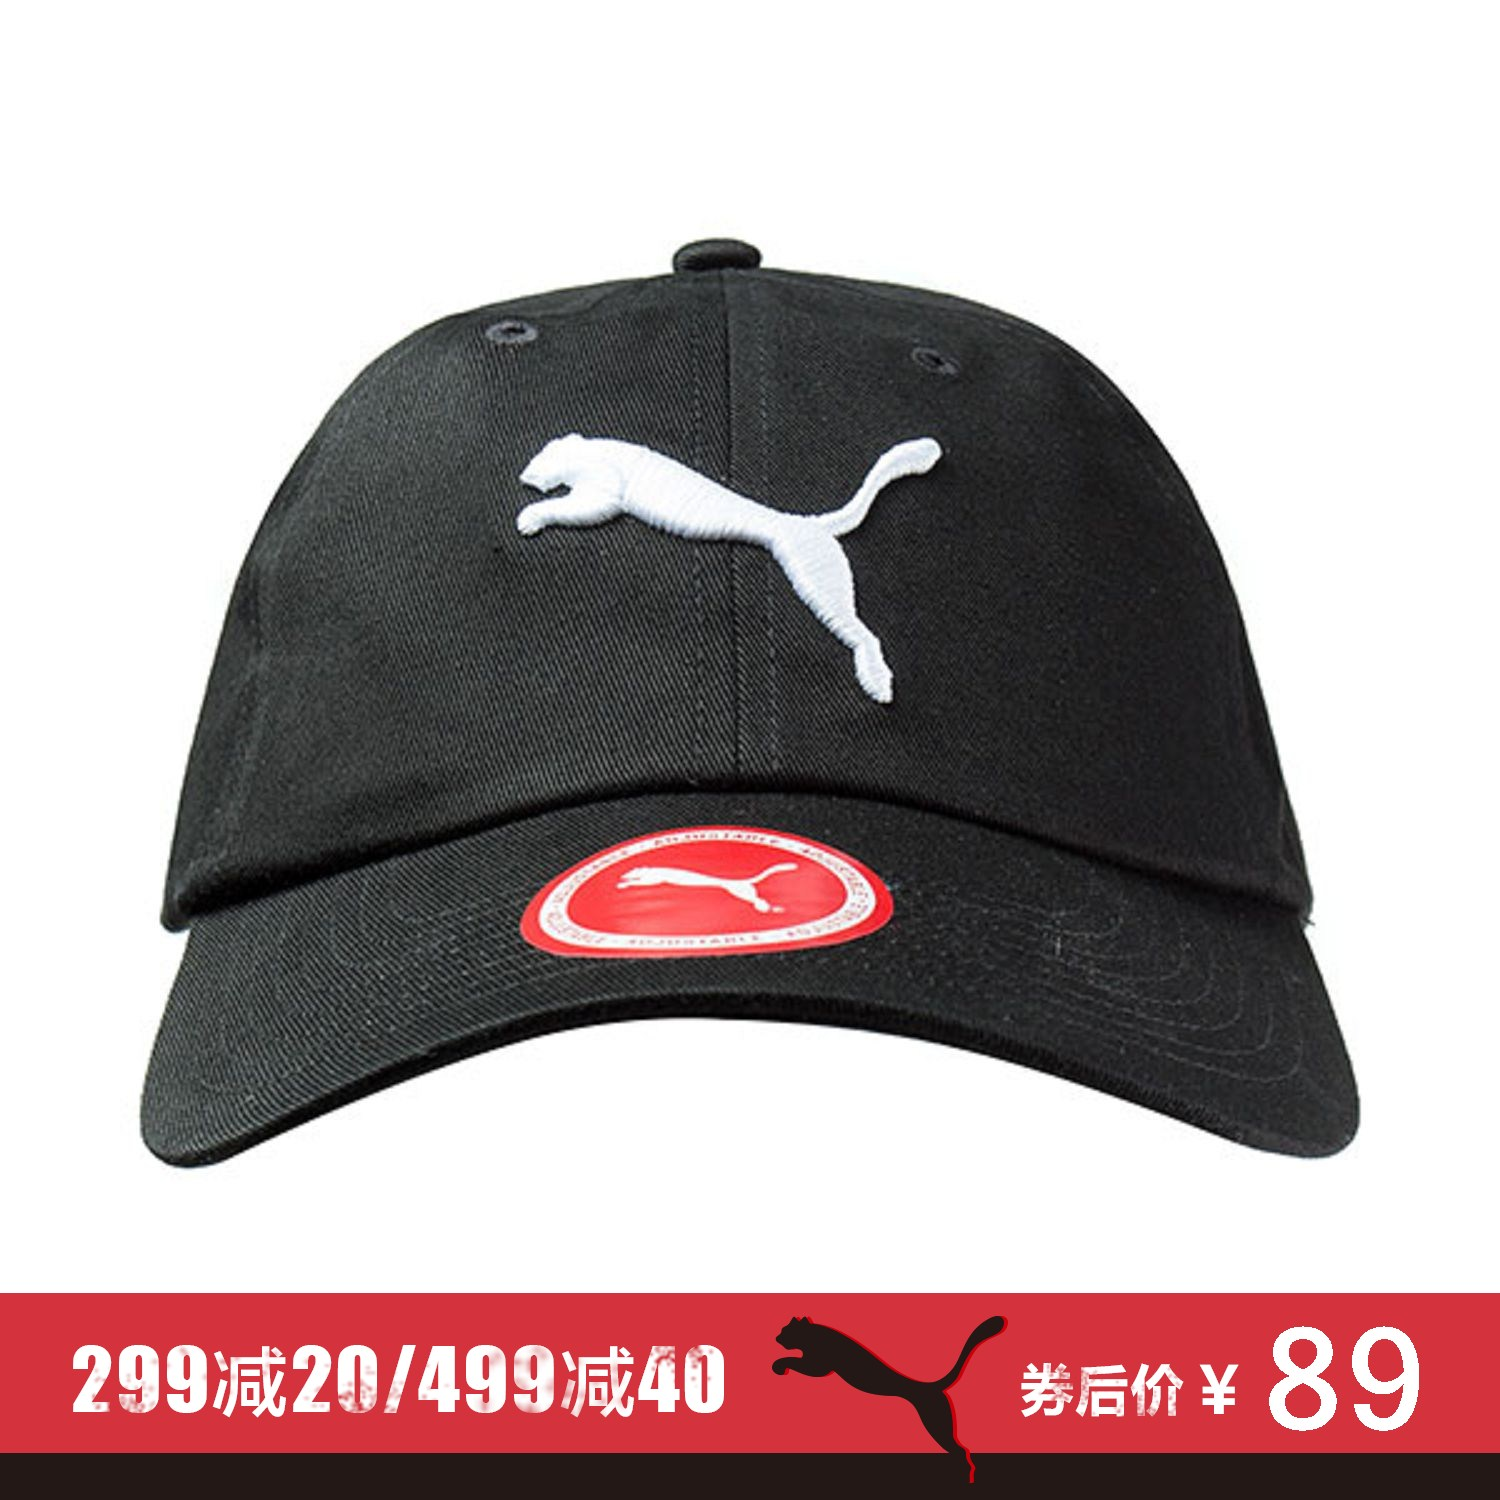 Hummer Puma neutral hat cap sport accessories sports and leisure 05291901